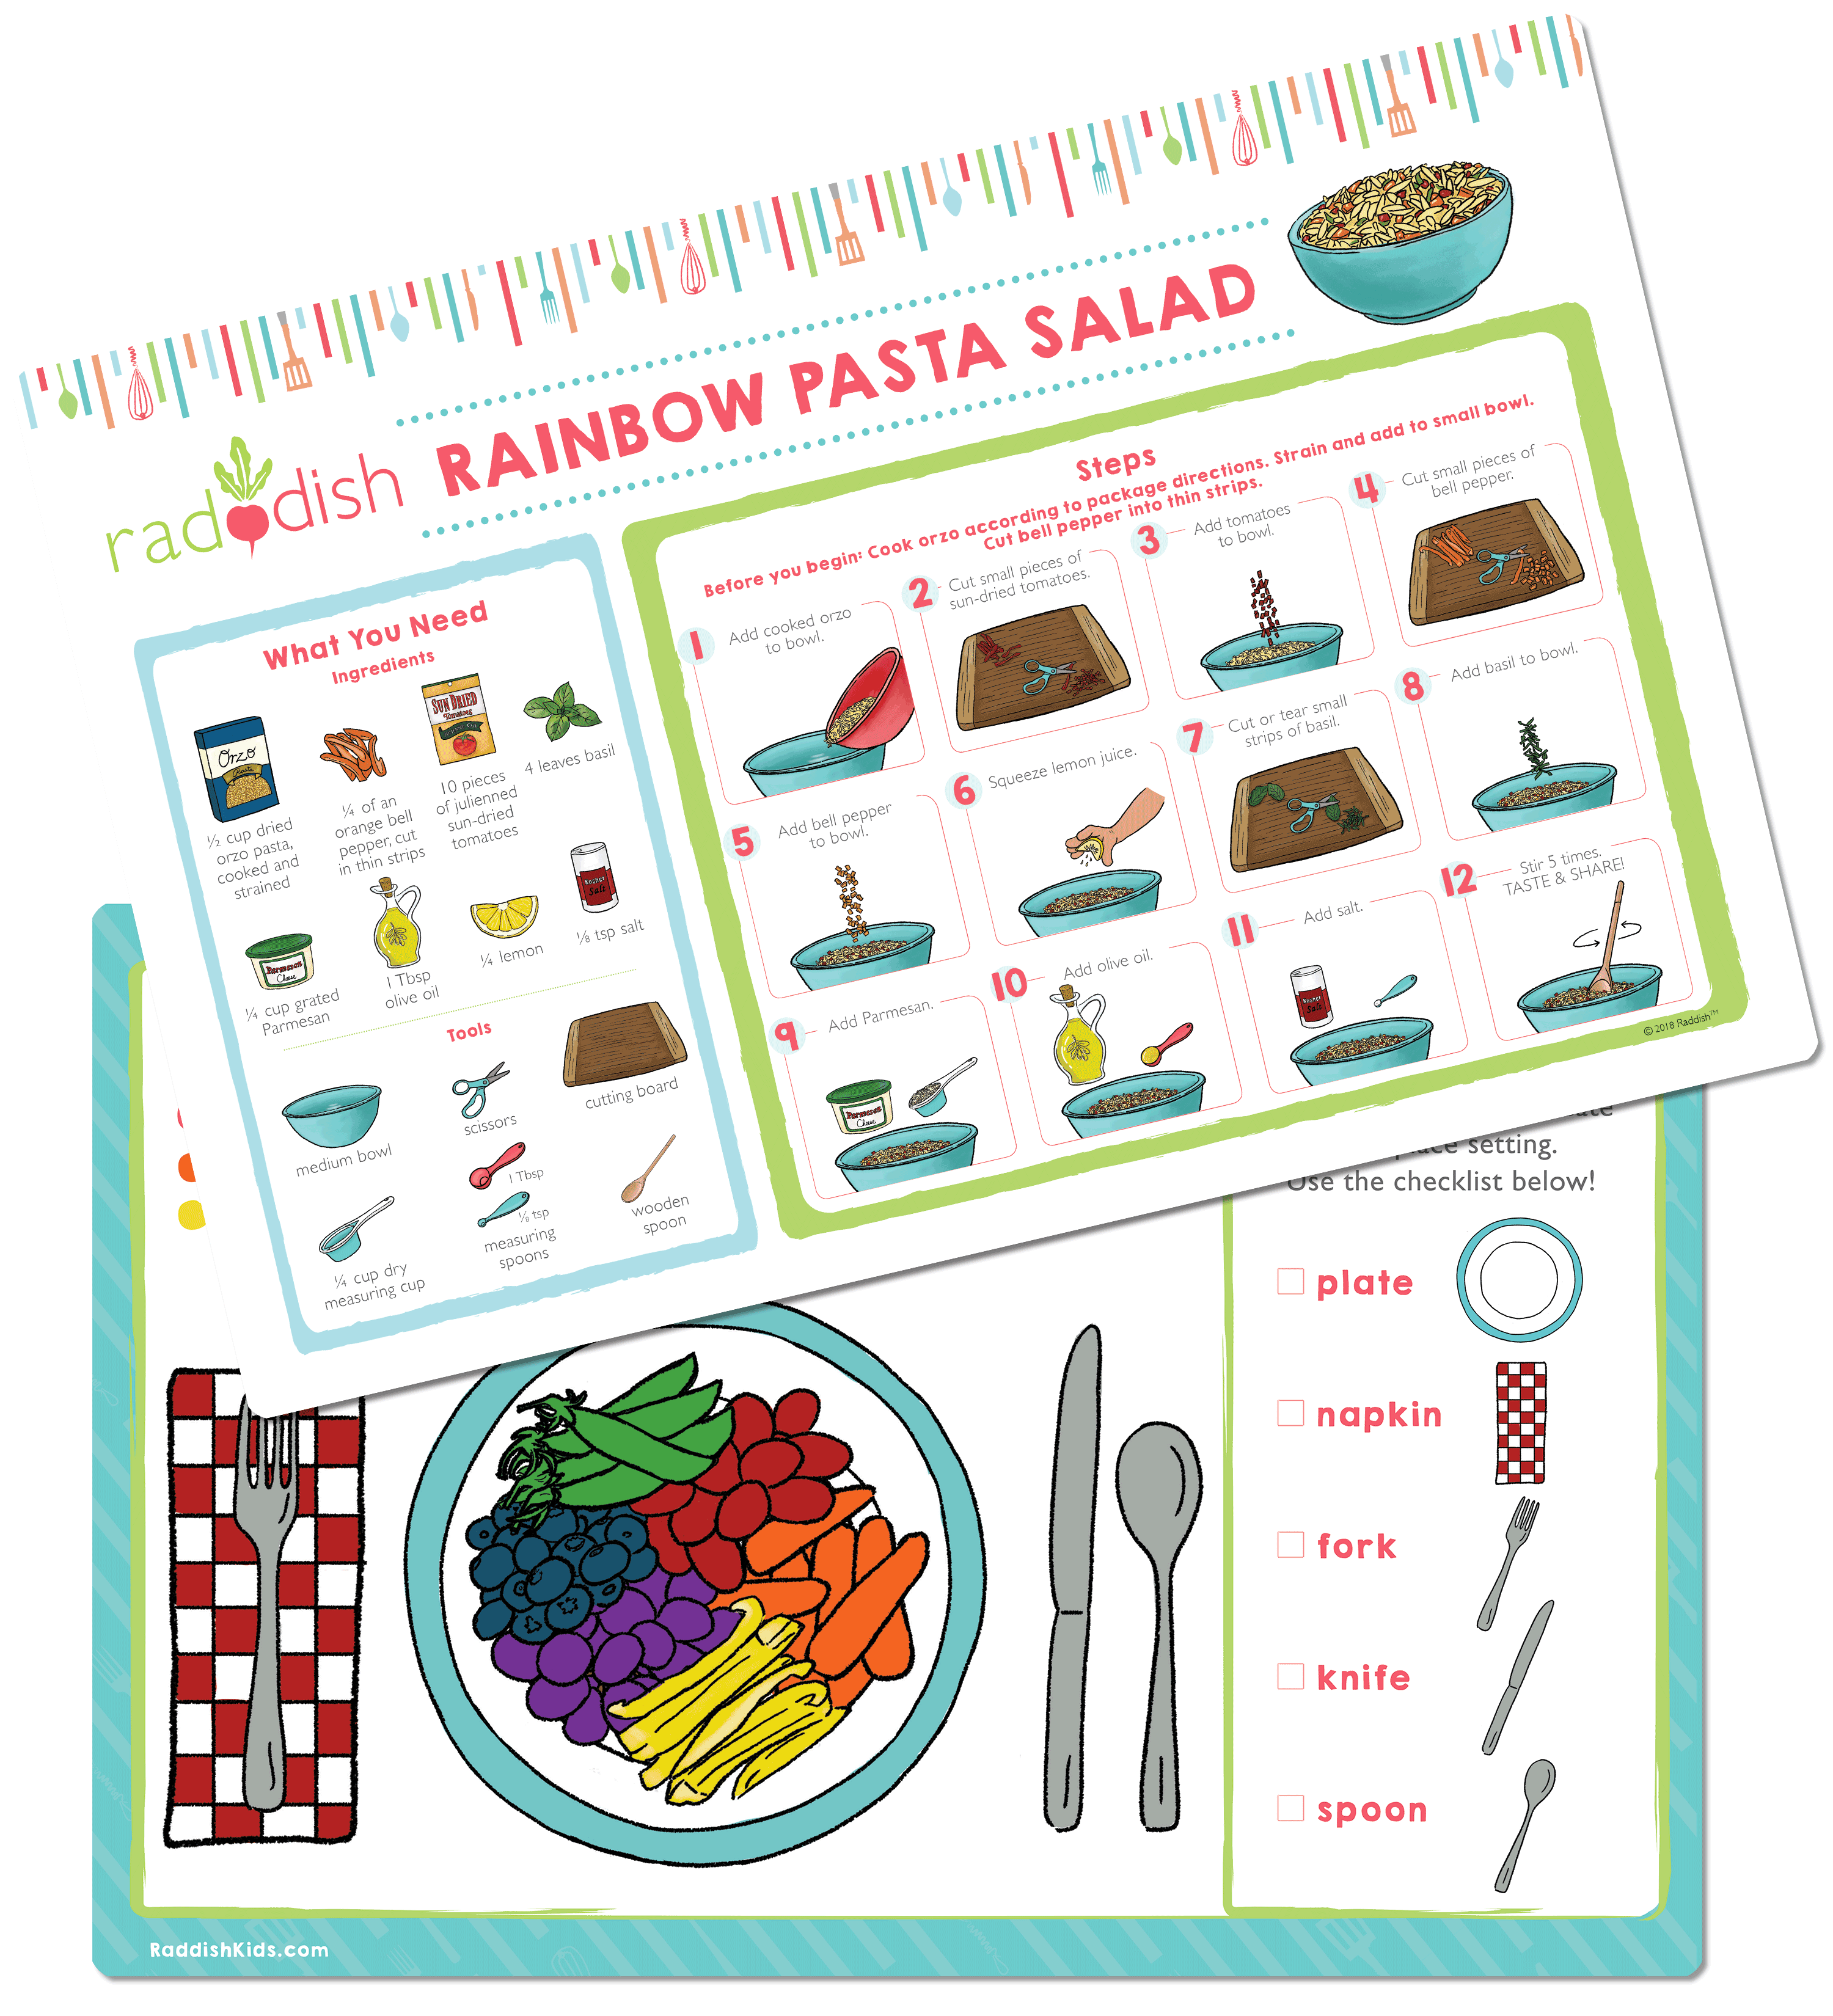 Raddish Cook+Play Rainbow Pasta Salad Placemat